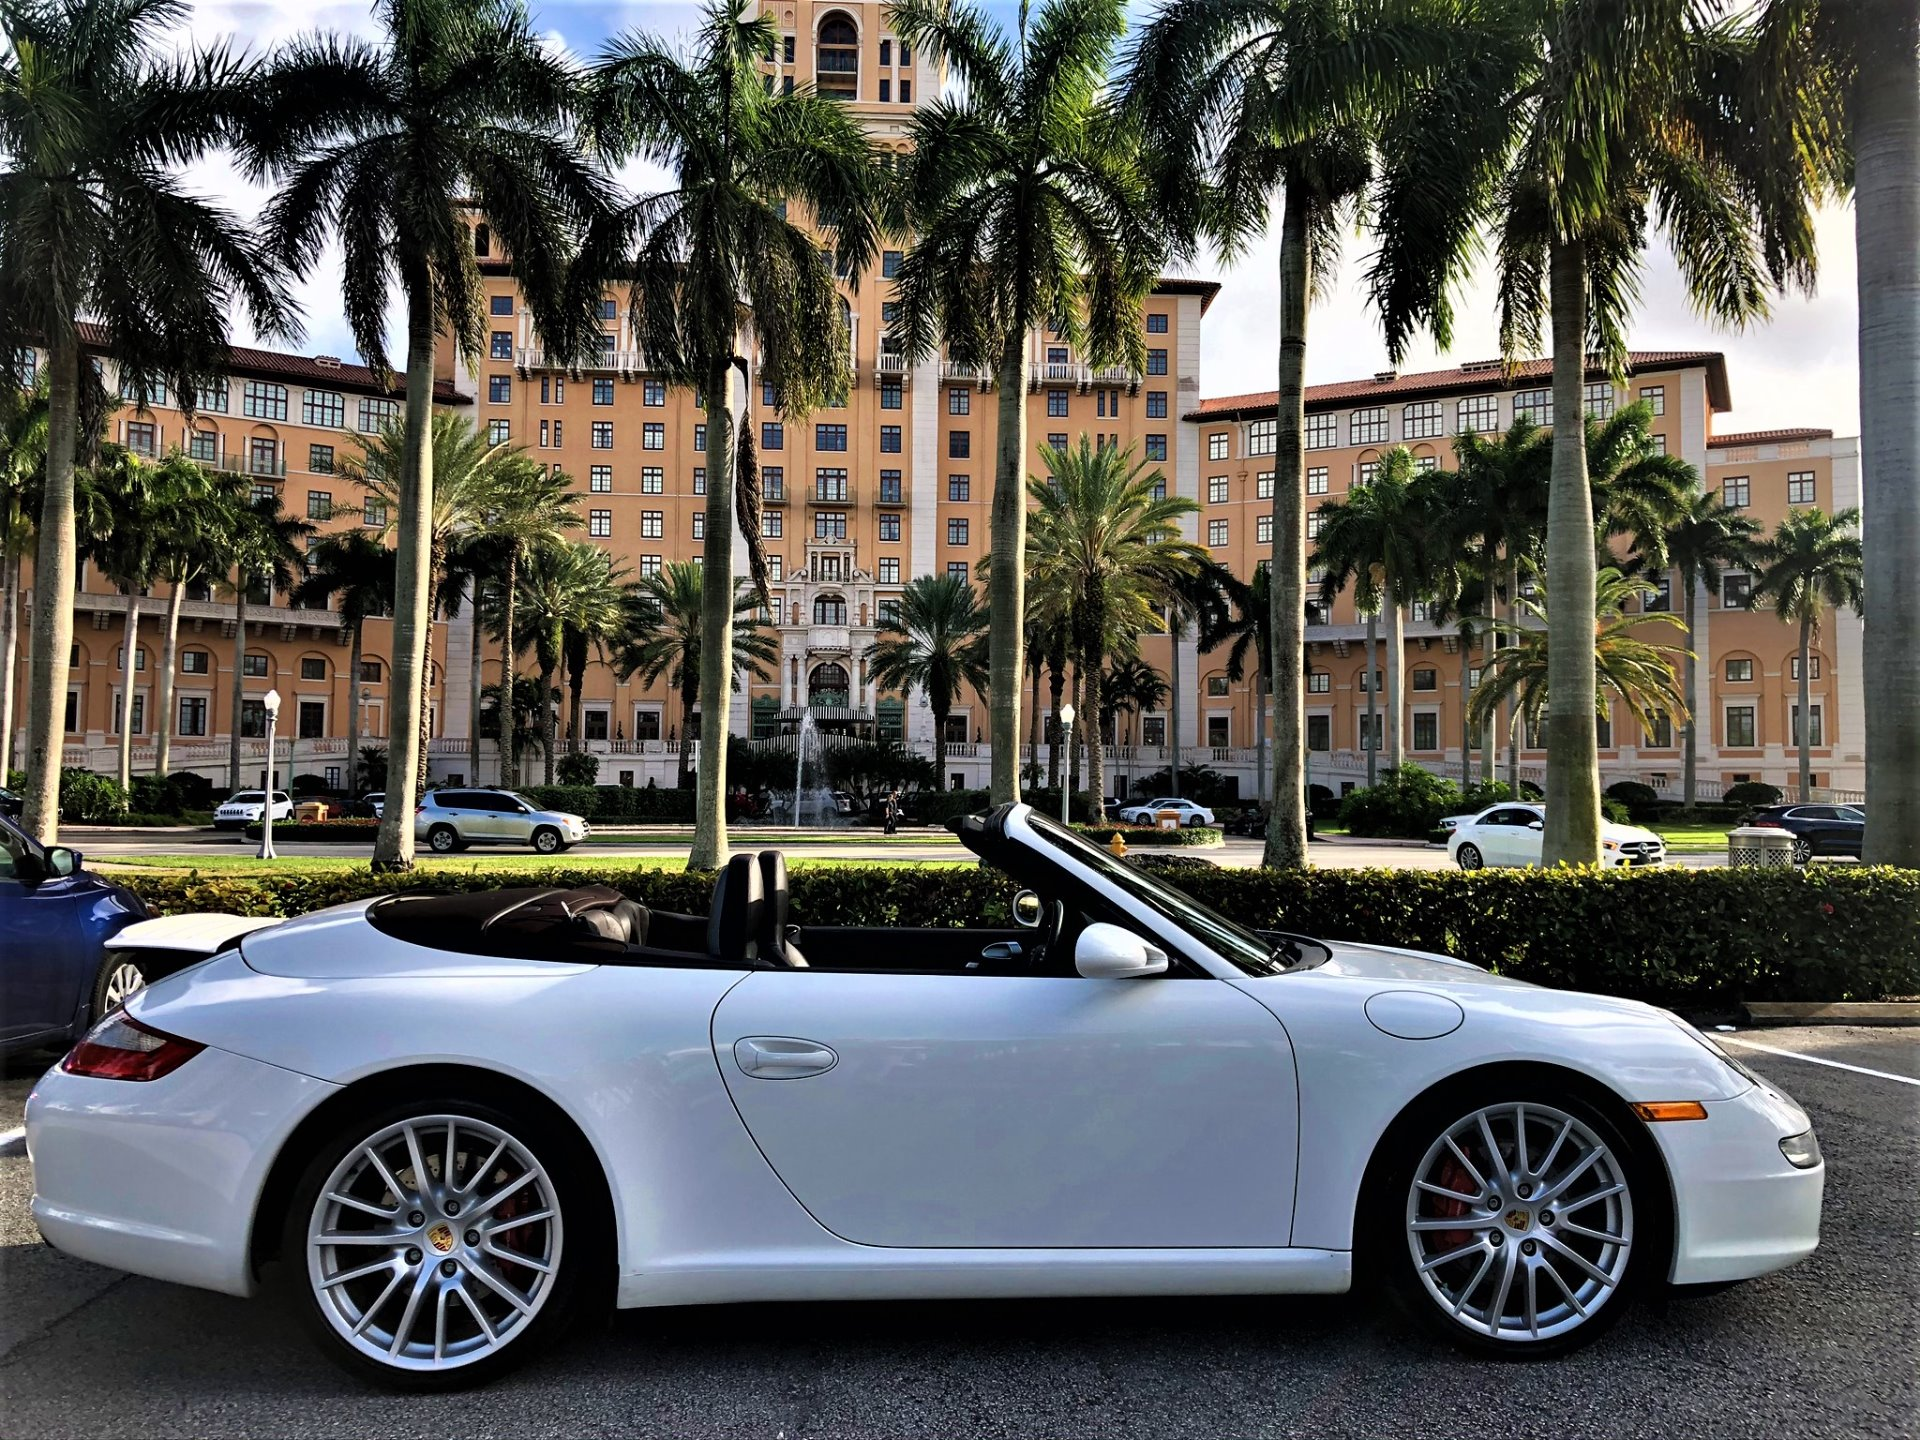 Used 2005 Porsche 911 Carrera S for sale $39,850 at The Gables Sports Cars in Miami FL 33146 1